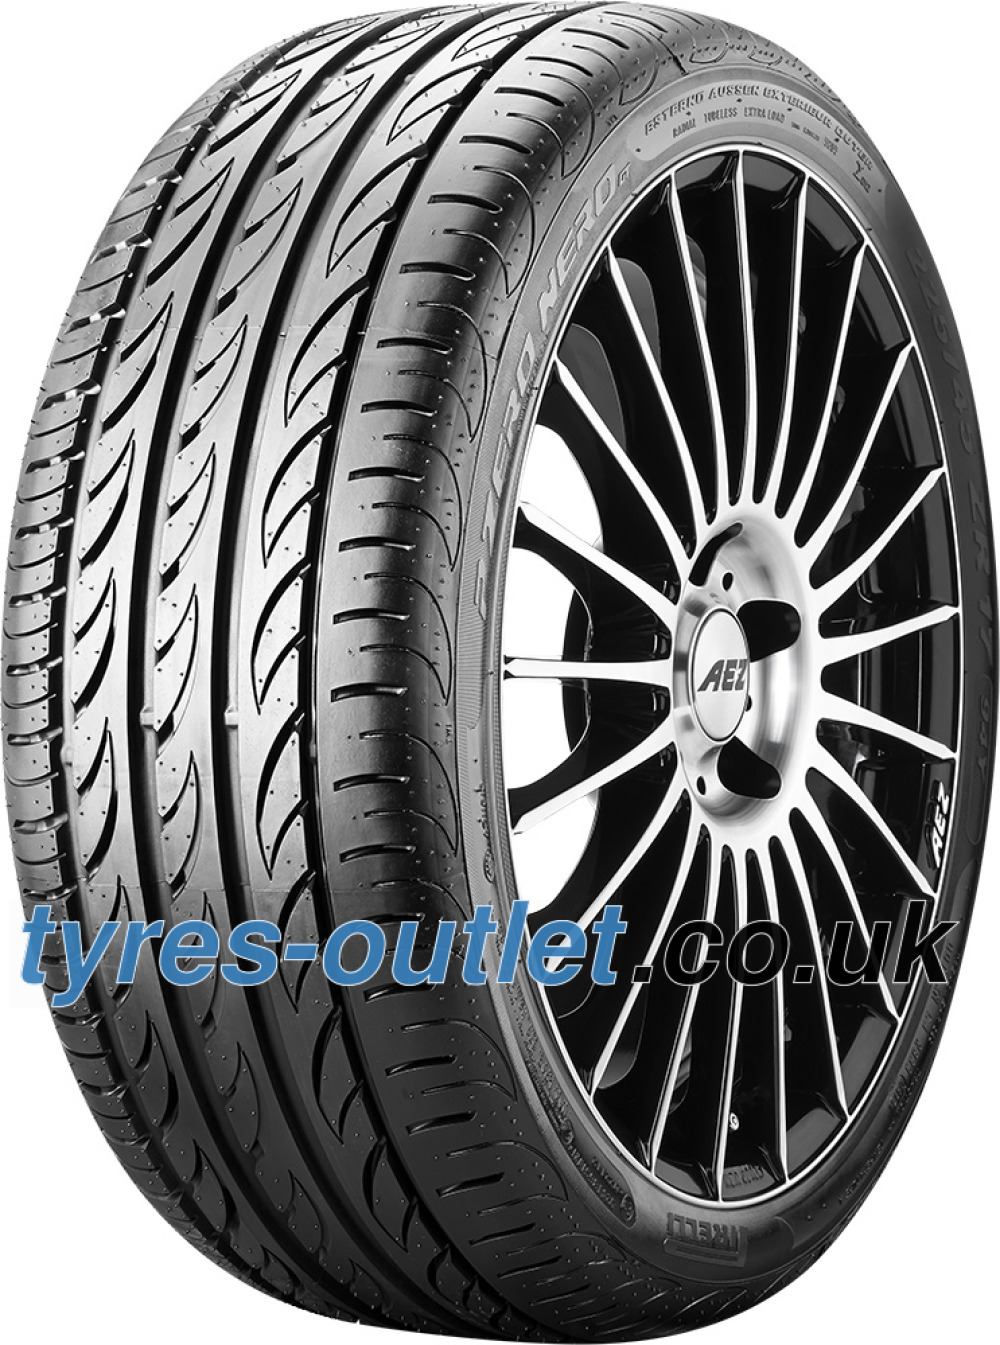 Pirelli P Zero Nero GT ( 225/35 ZR18 87Y XL with rim protection (MFS) )